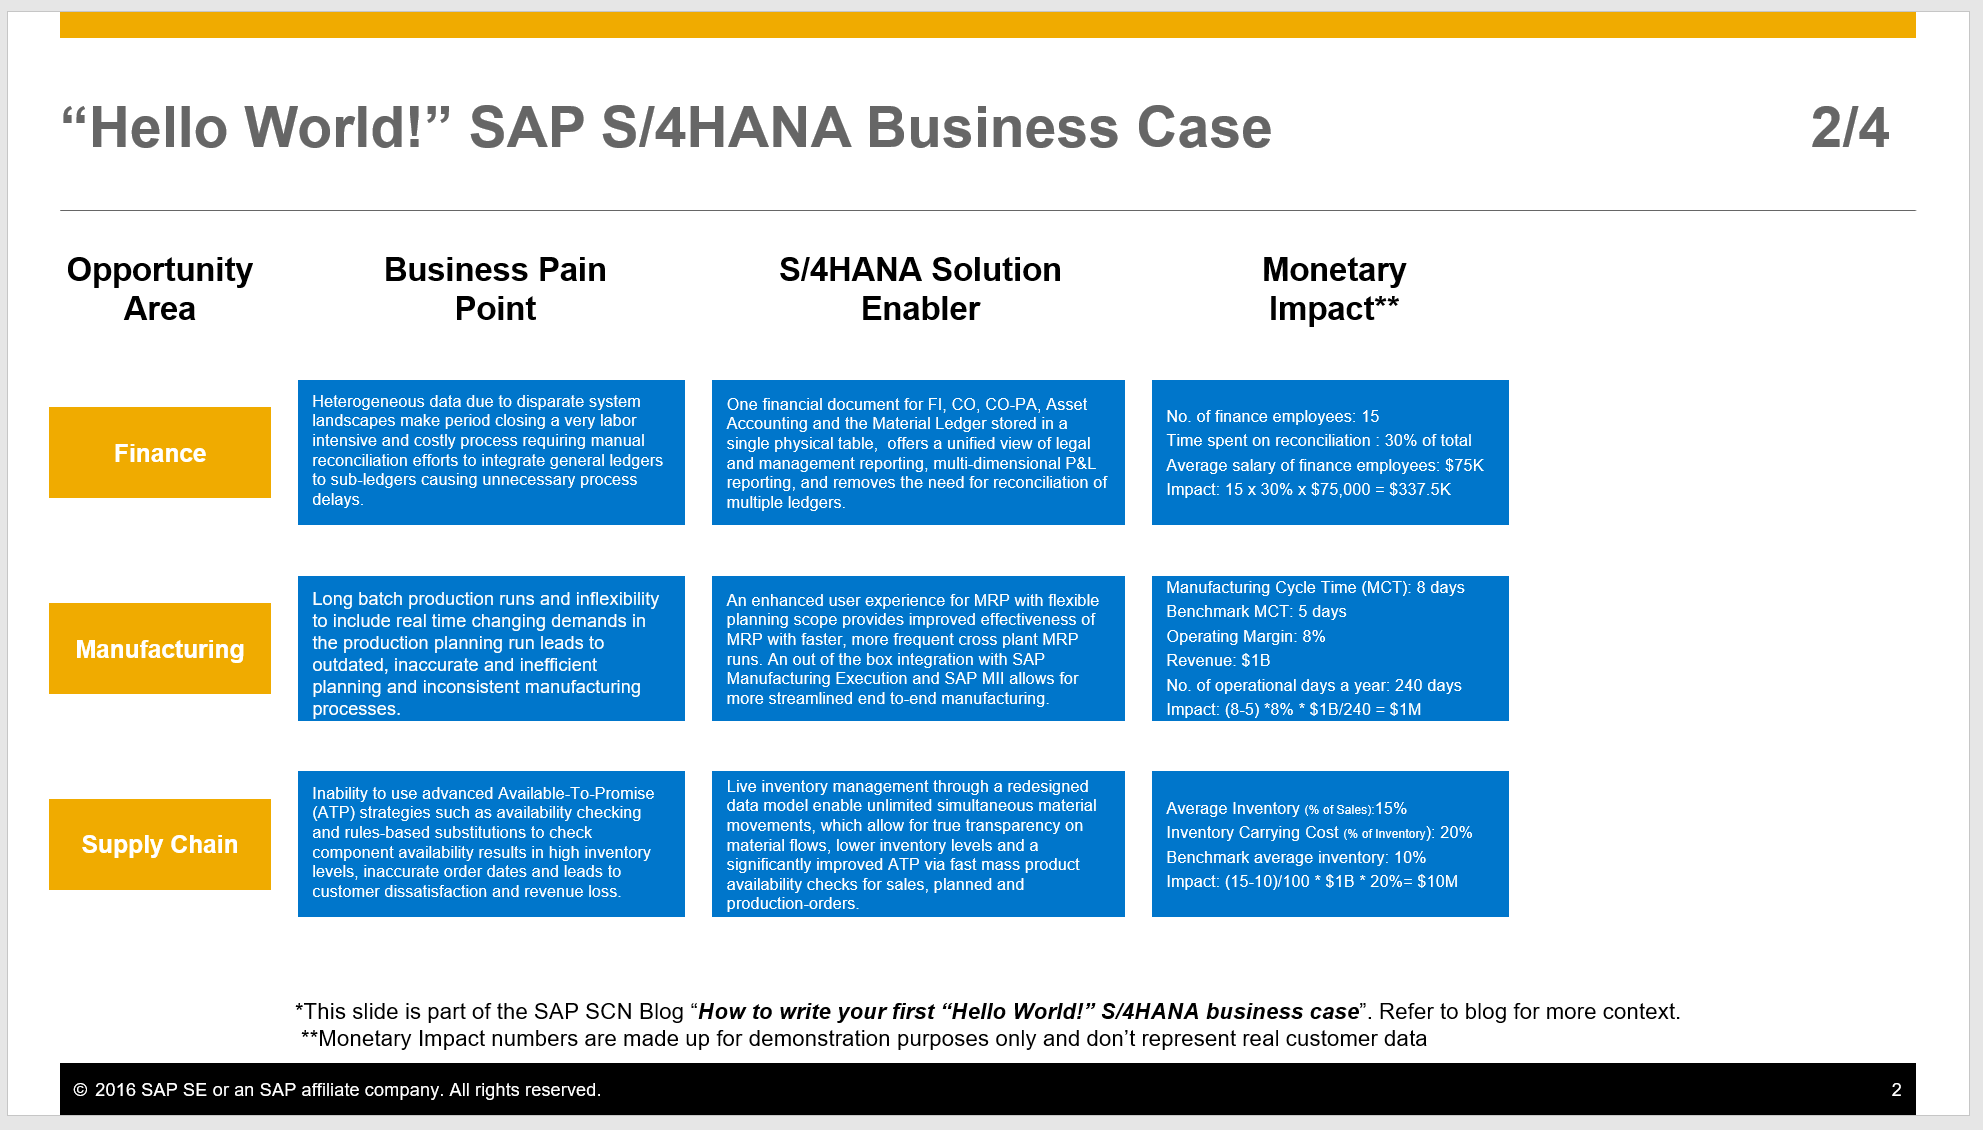 How to Write Your First SAP S/4HANA Business Case | SAP News